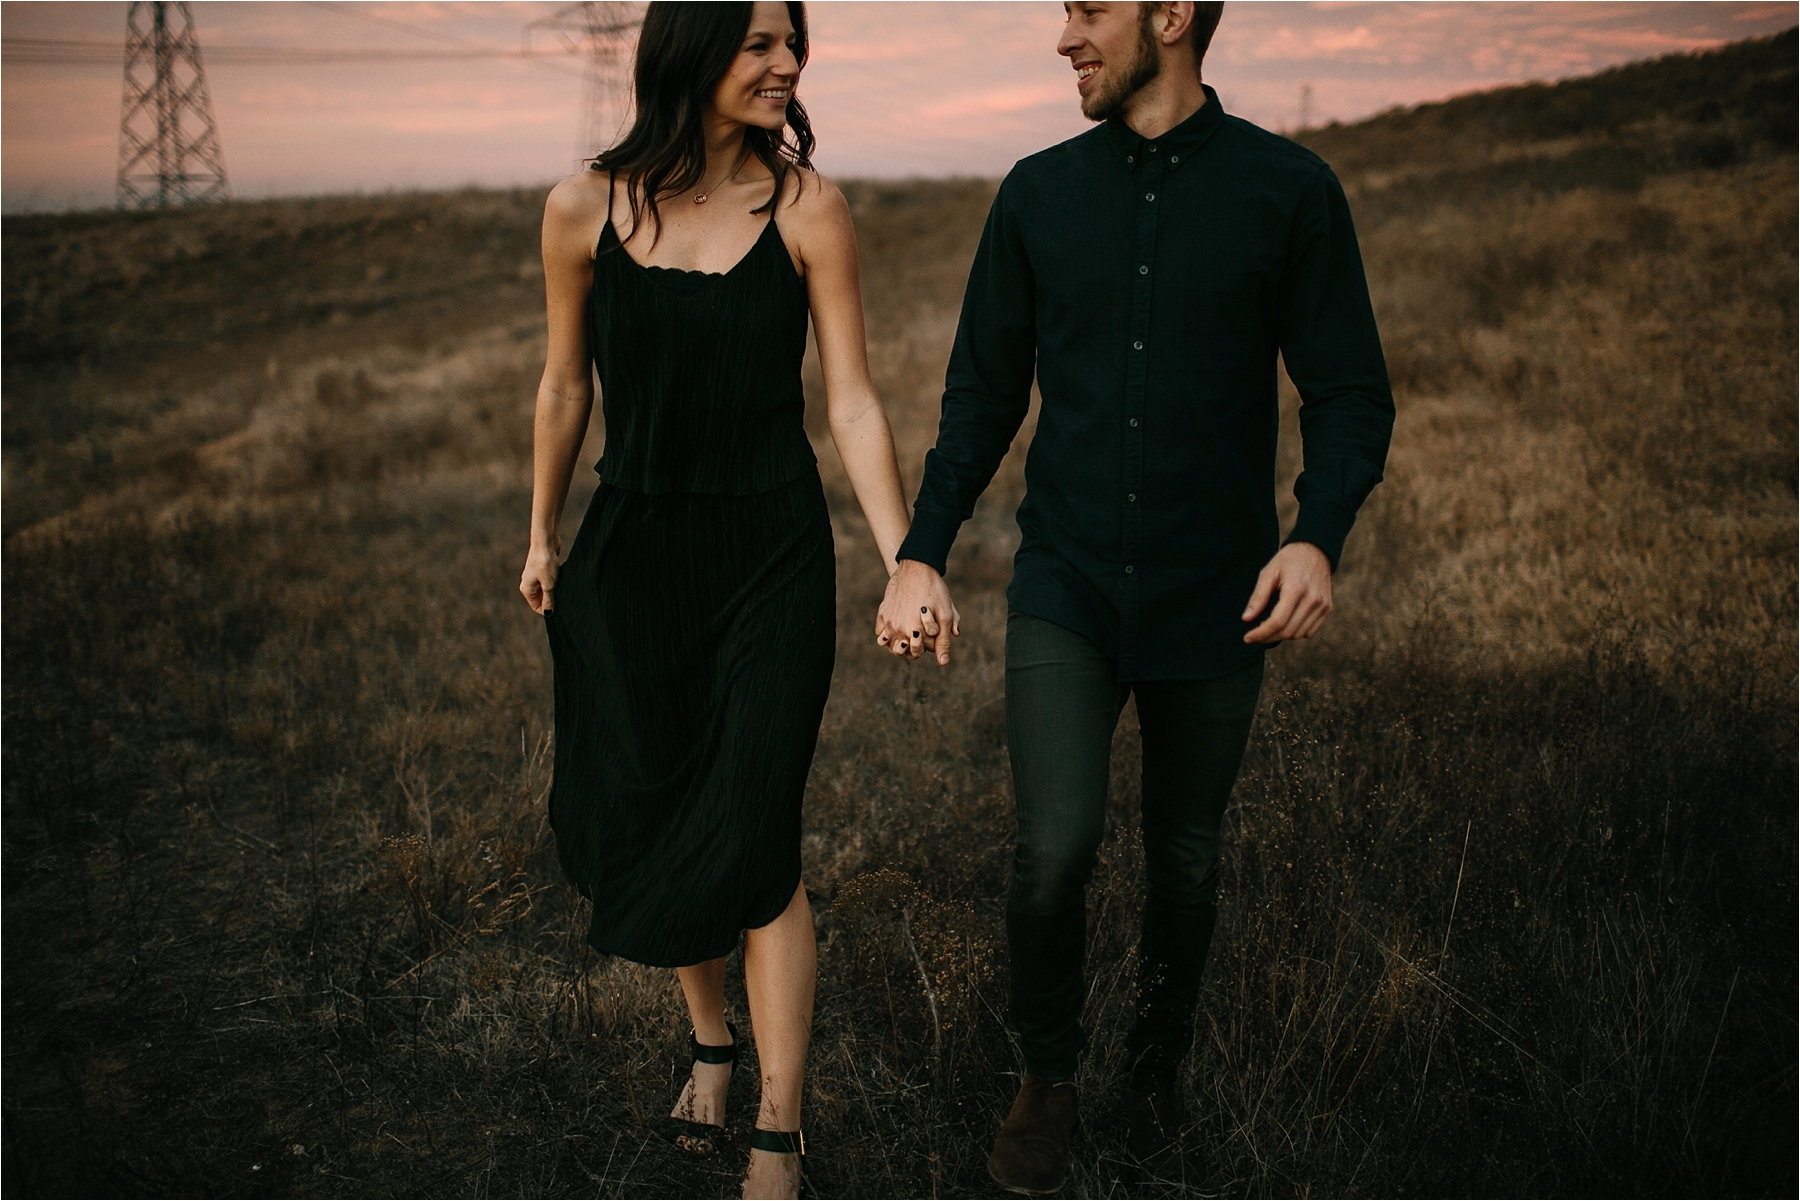 Trey + Phoebe __ a playful, intimate engagement session with dark_neutral outfit inspiration by North Texas Wedding Photographer Rachel Meagan Photography __ 65